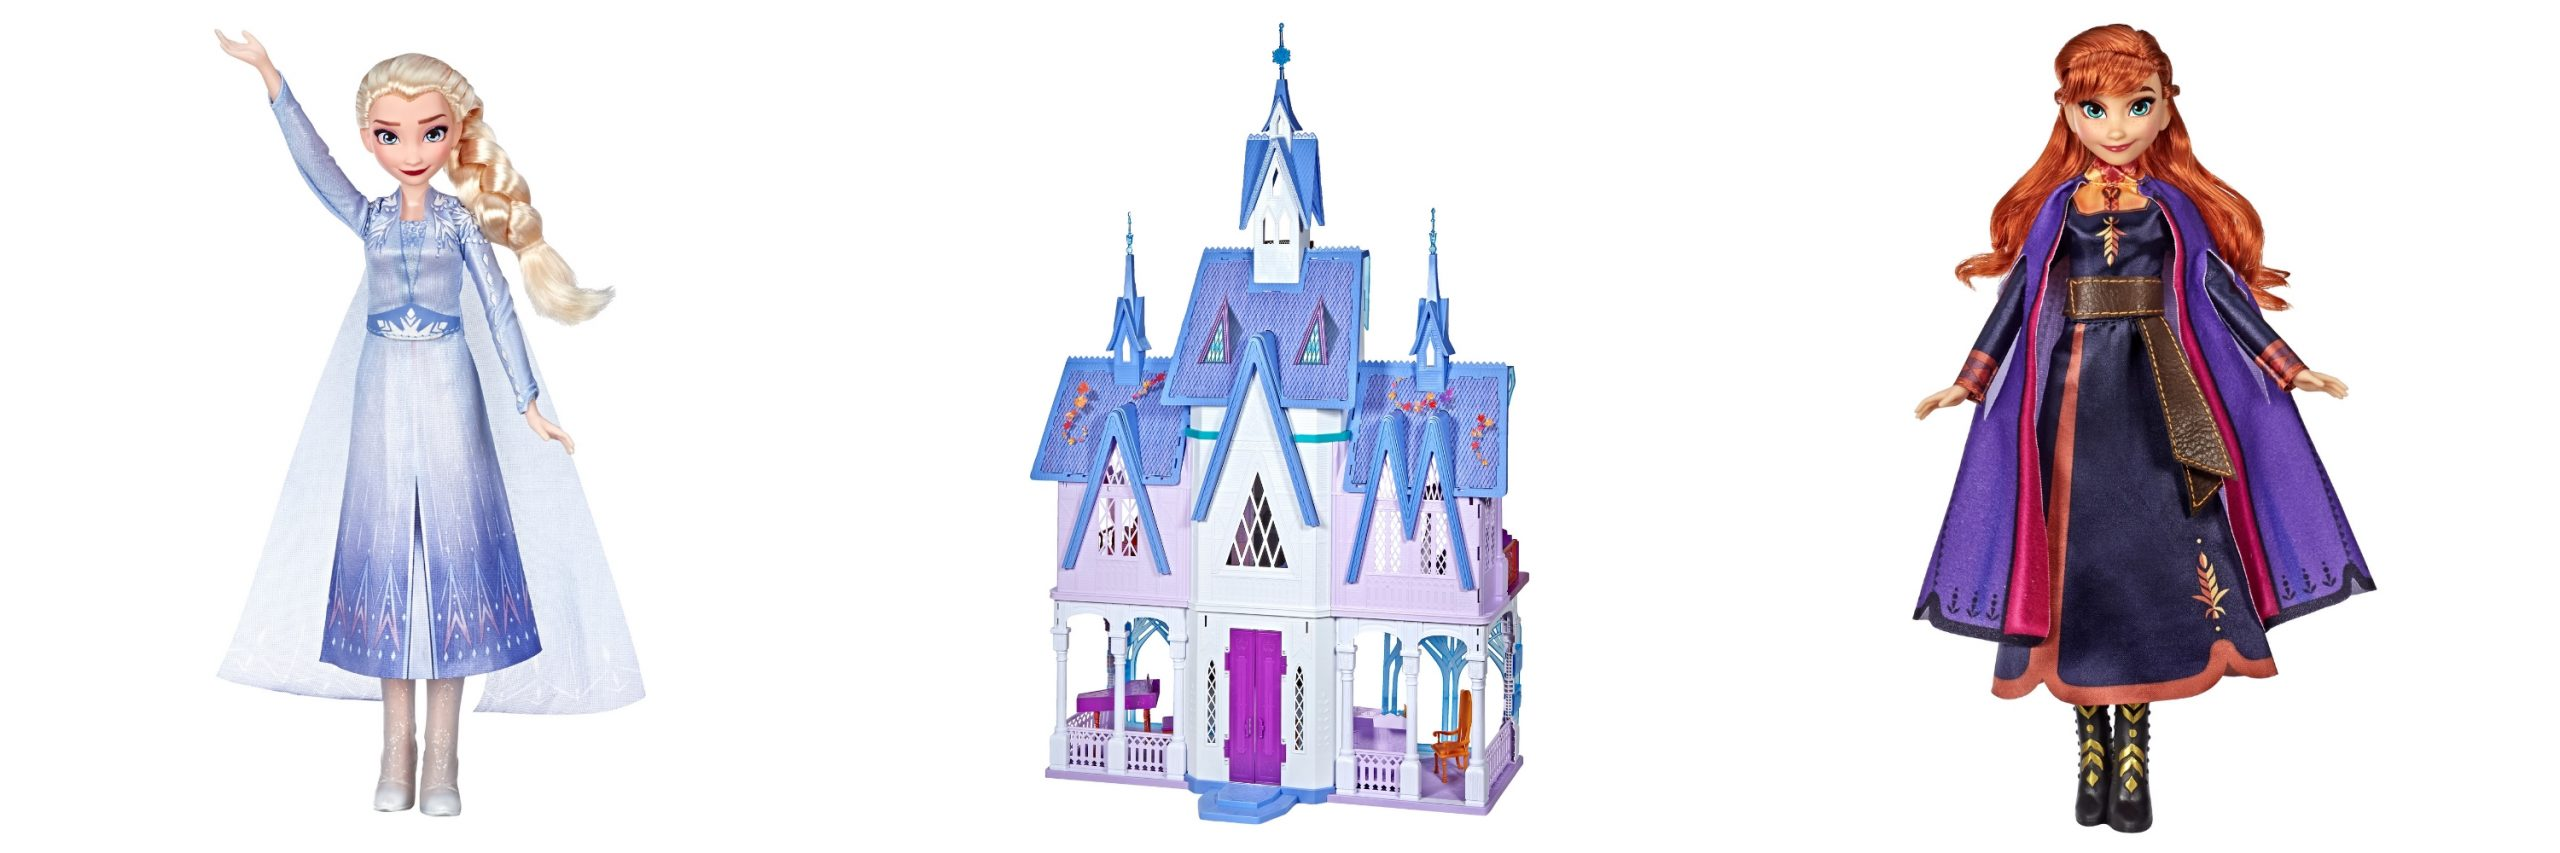 Are you ready to be a part of Frozen Fan Fest? This is the complete guide to all Frozen 2 merchandise from dolls to dollhouses.